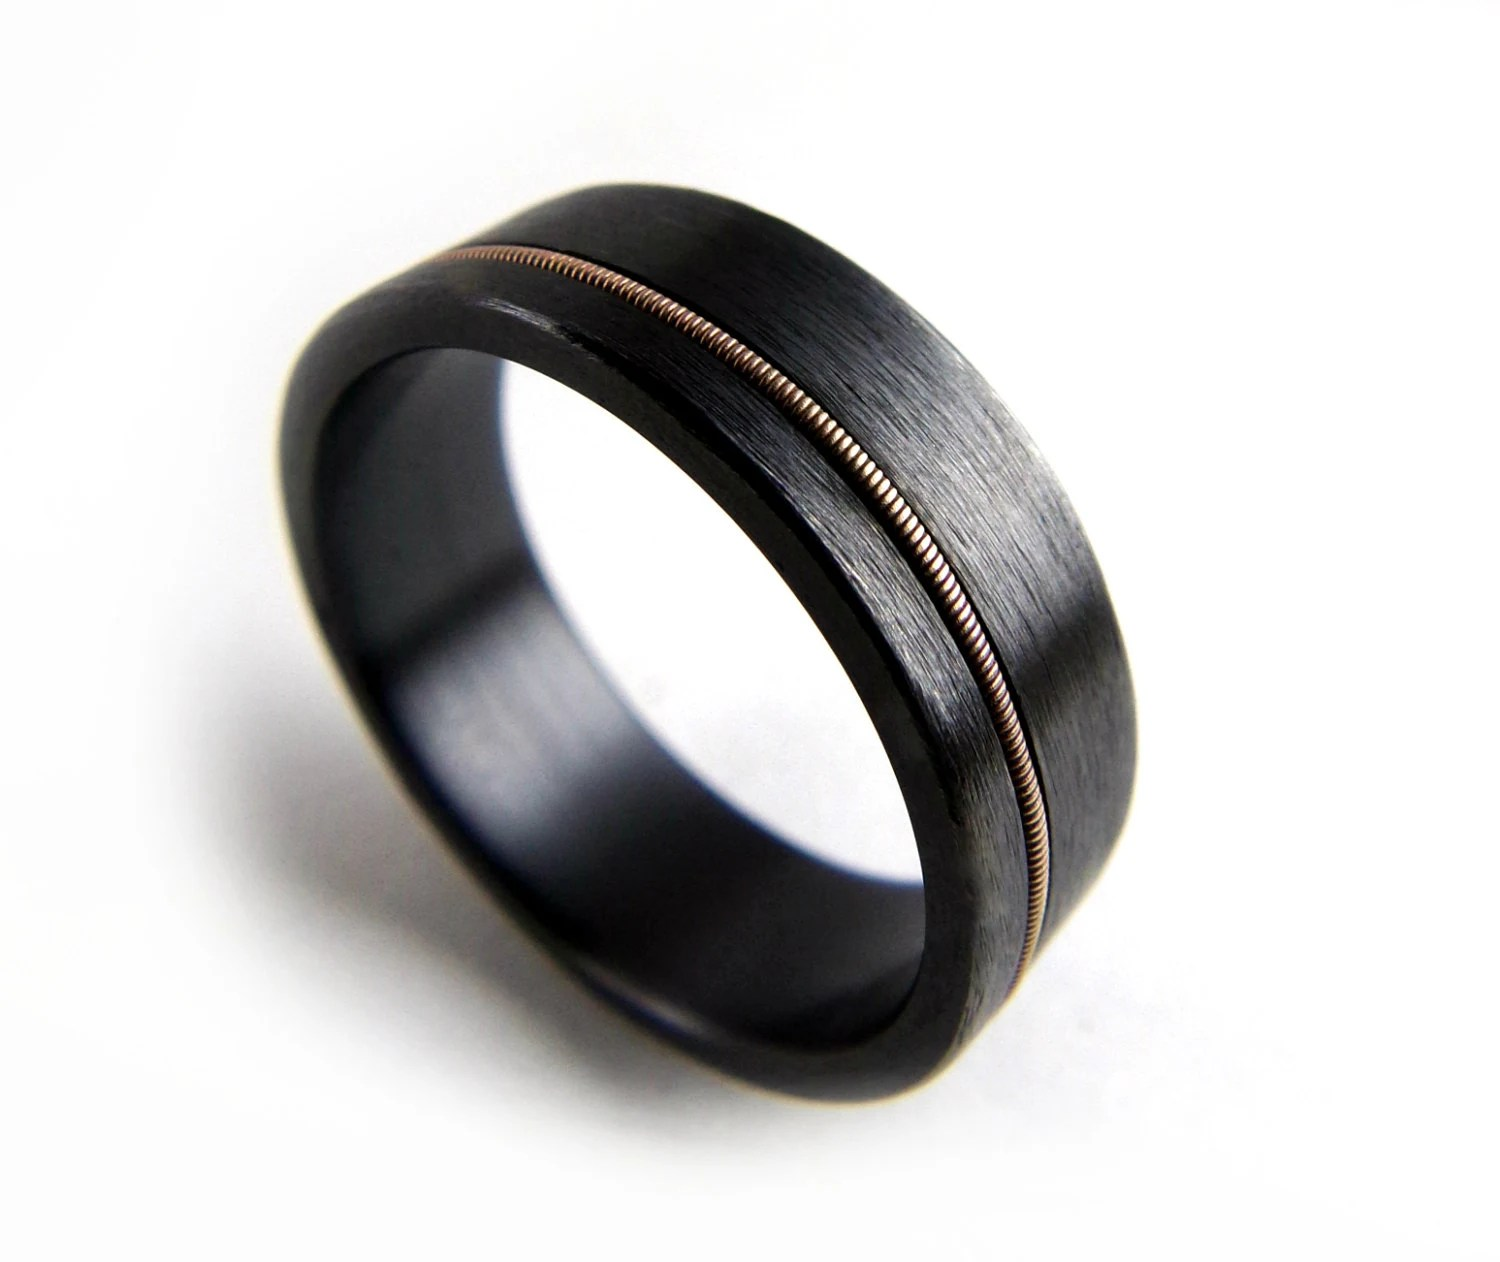 black zirconium ring black mens wedding rings Black Zirconium Ring Guitar String Ring Black Metal Ring Guitar String Jewelry Black Ring Men Black Ring Women Wedding Ring Black Band